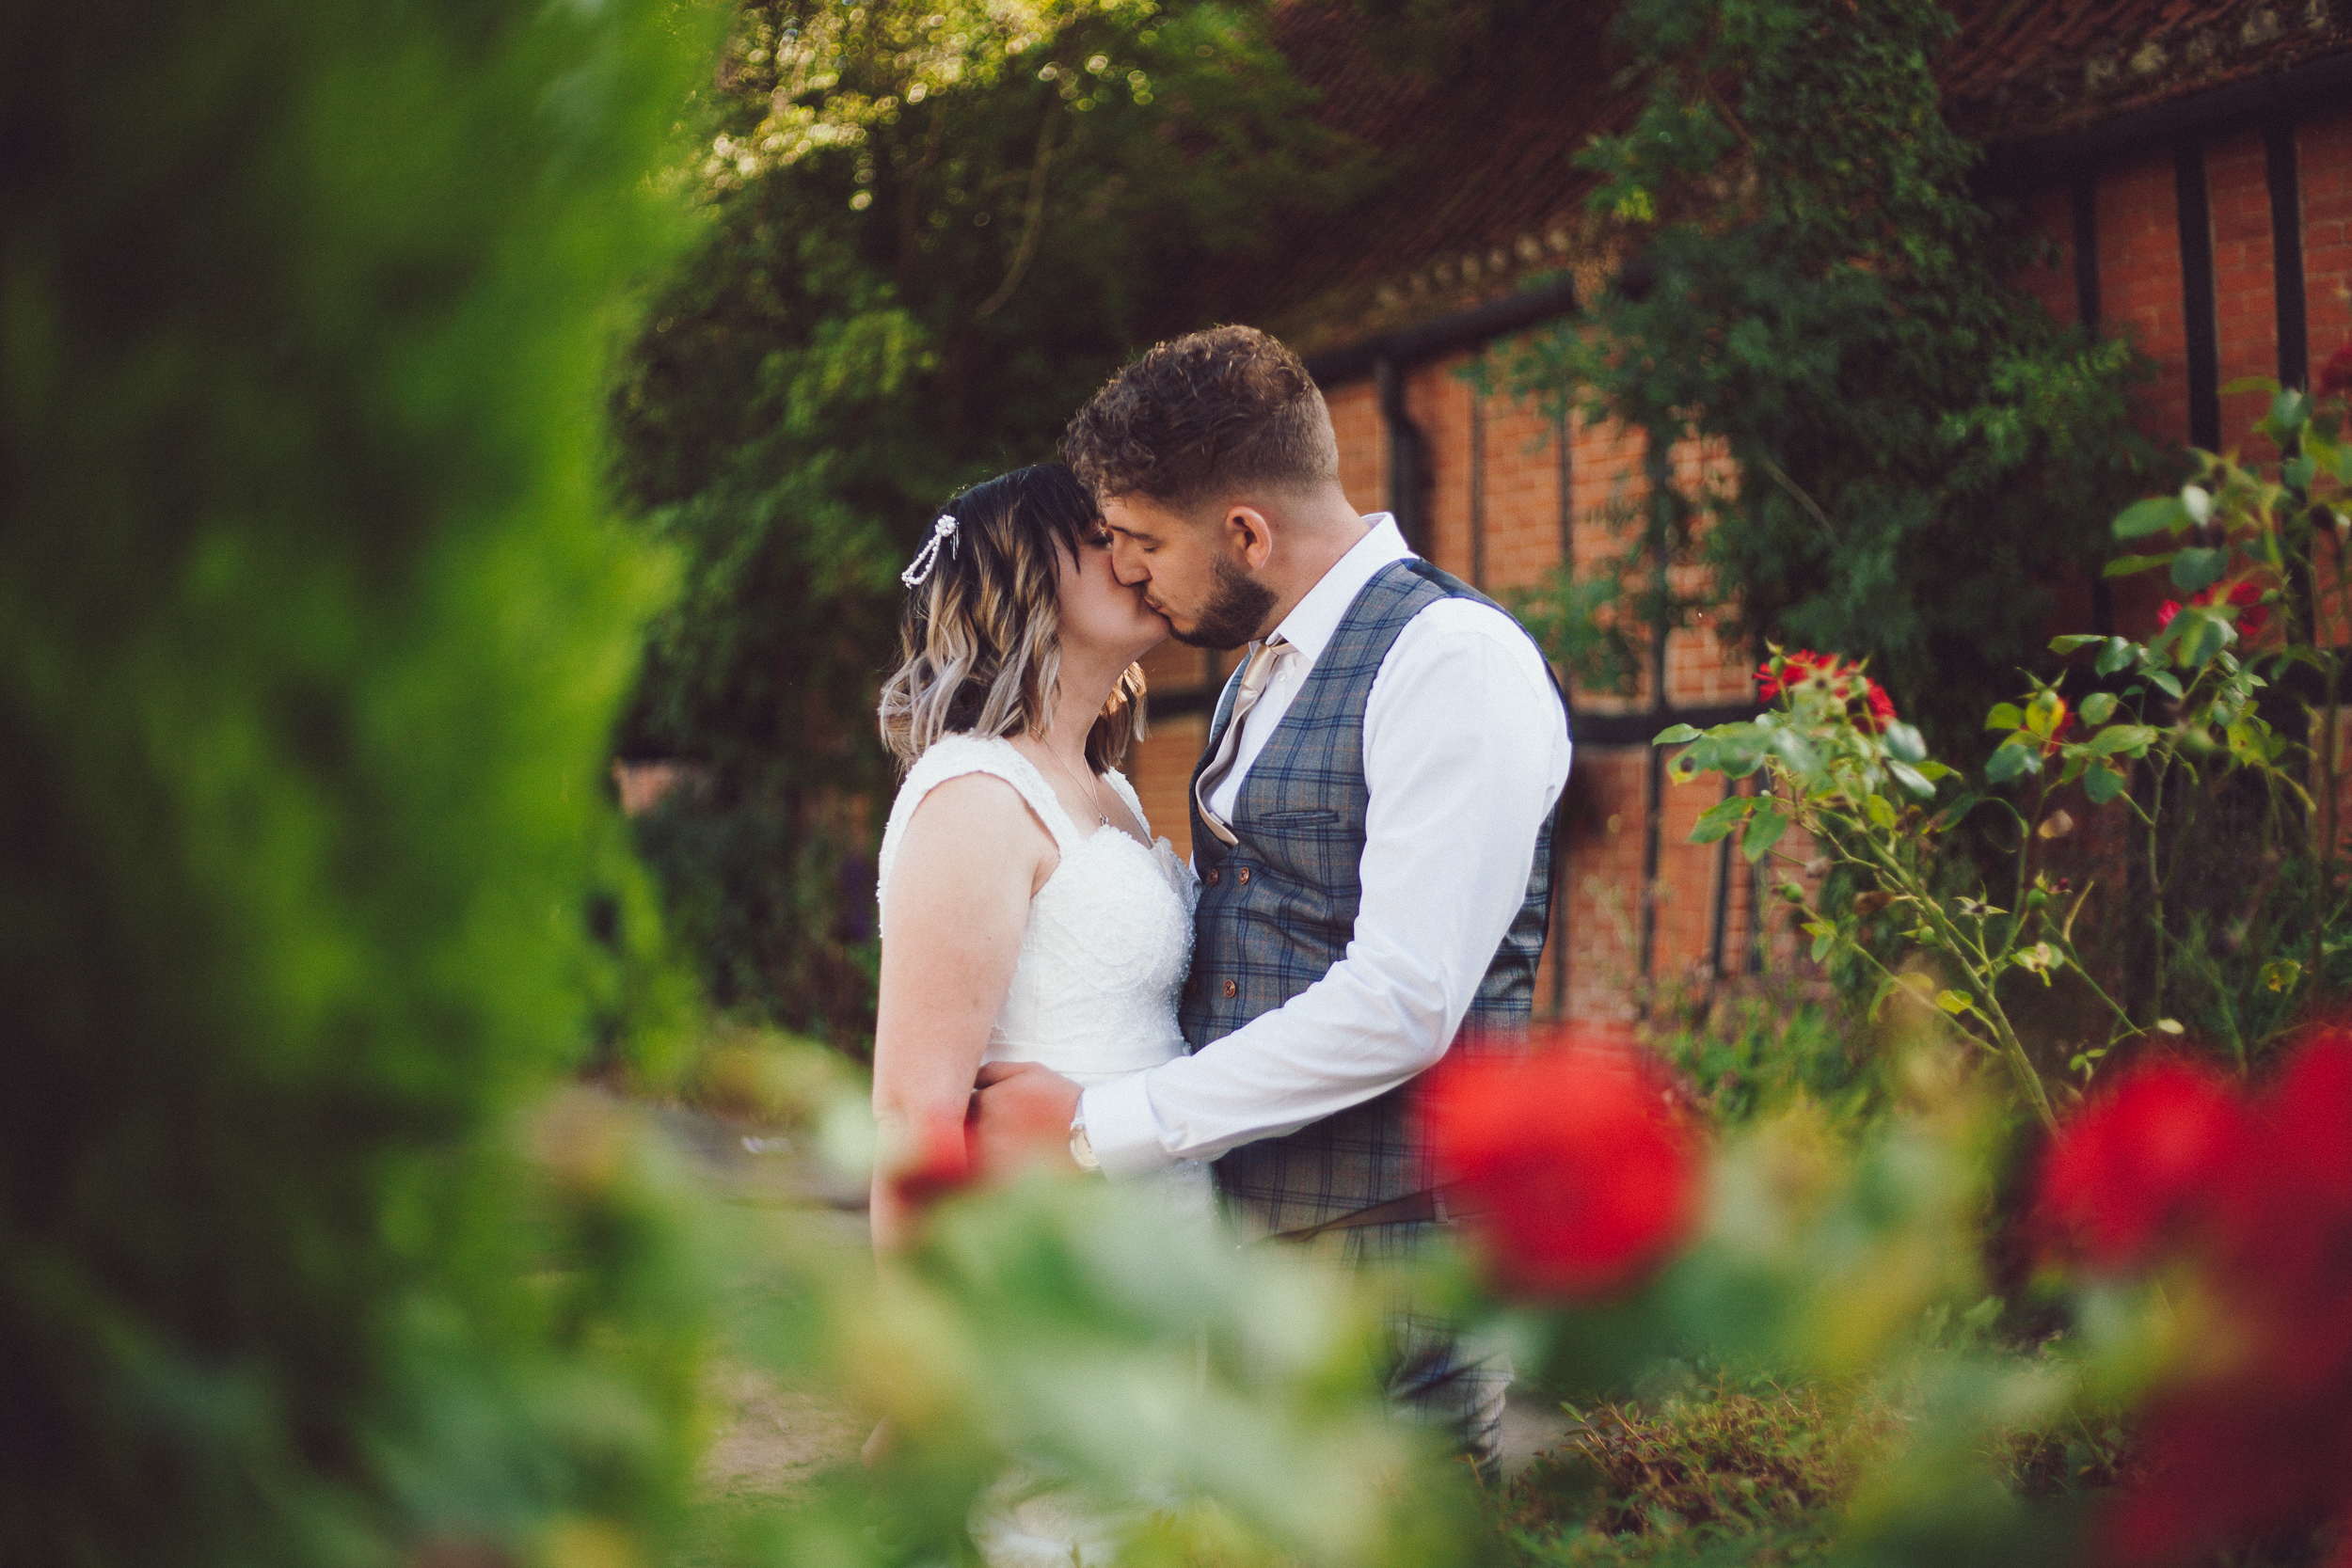 Beautiful couples portrait captured at the barns hotel Bedfordshire by Wedding photographer Richard Puncheon.